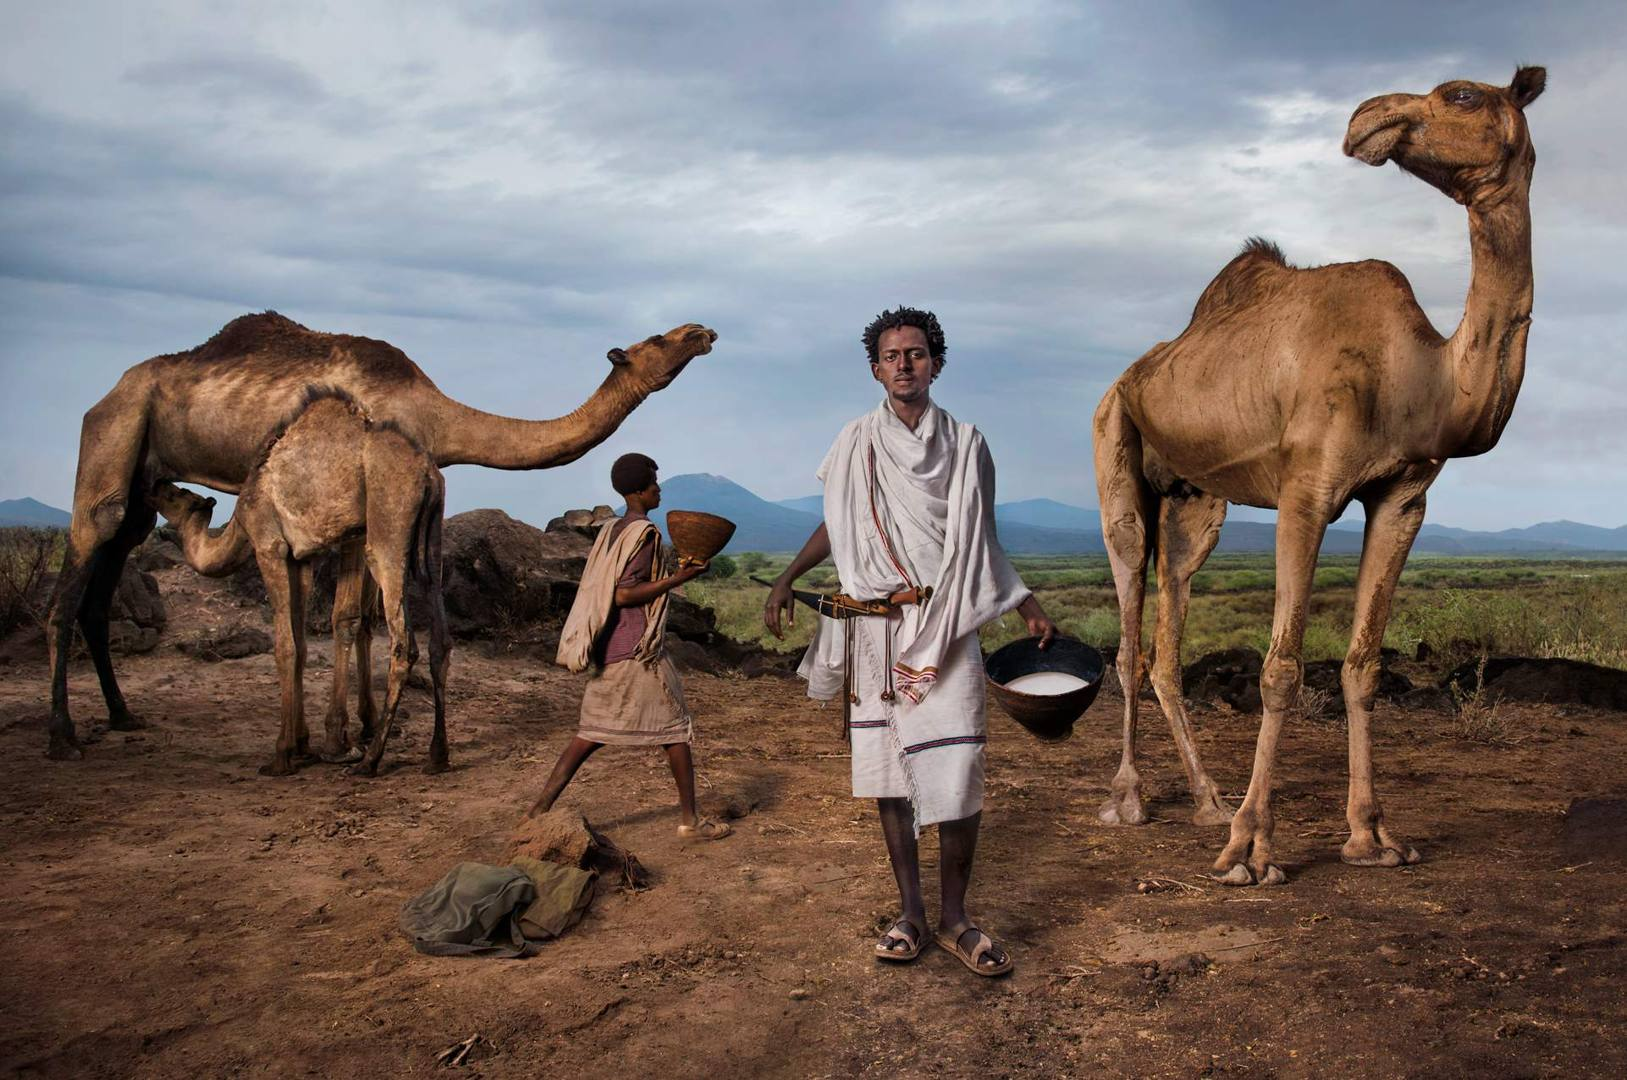 'The Chieftain' - Roba Bulga Jilo, an Ethiopian food activist, he is a member of the Karrayyu tribe of nomadic herders, with whom he has established a Slow Food Presidium to safeguard camel milk, a product with a symbolic value in Ethiopia